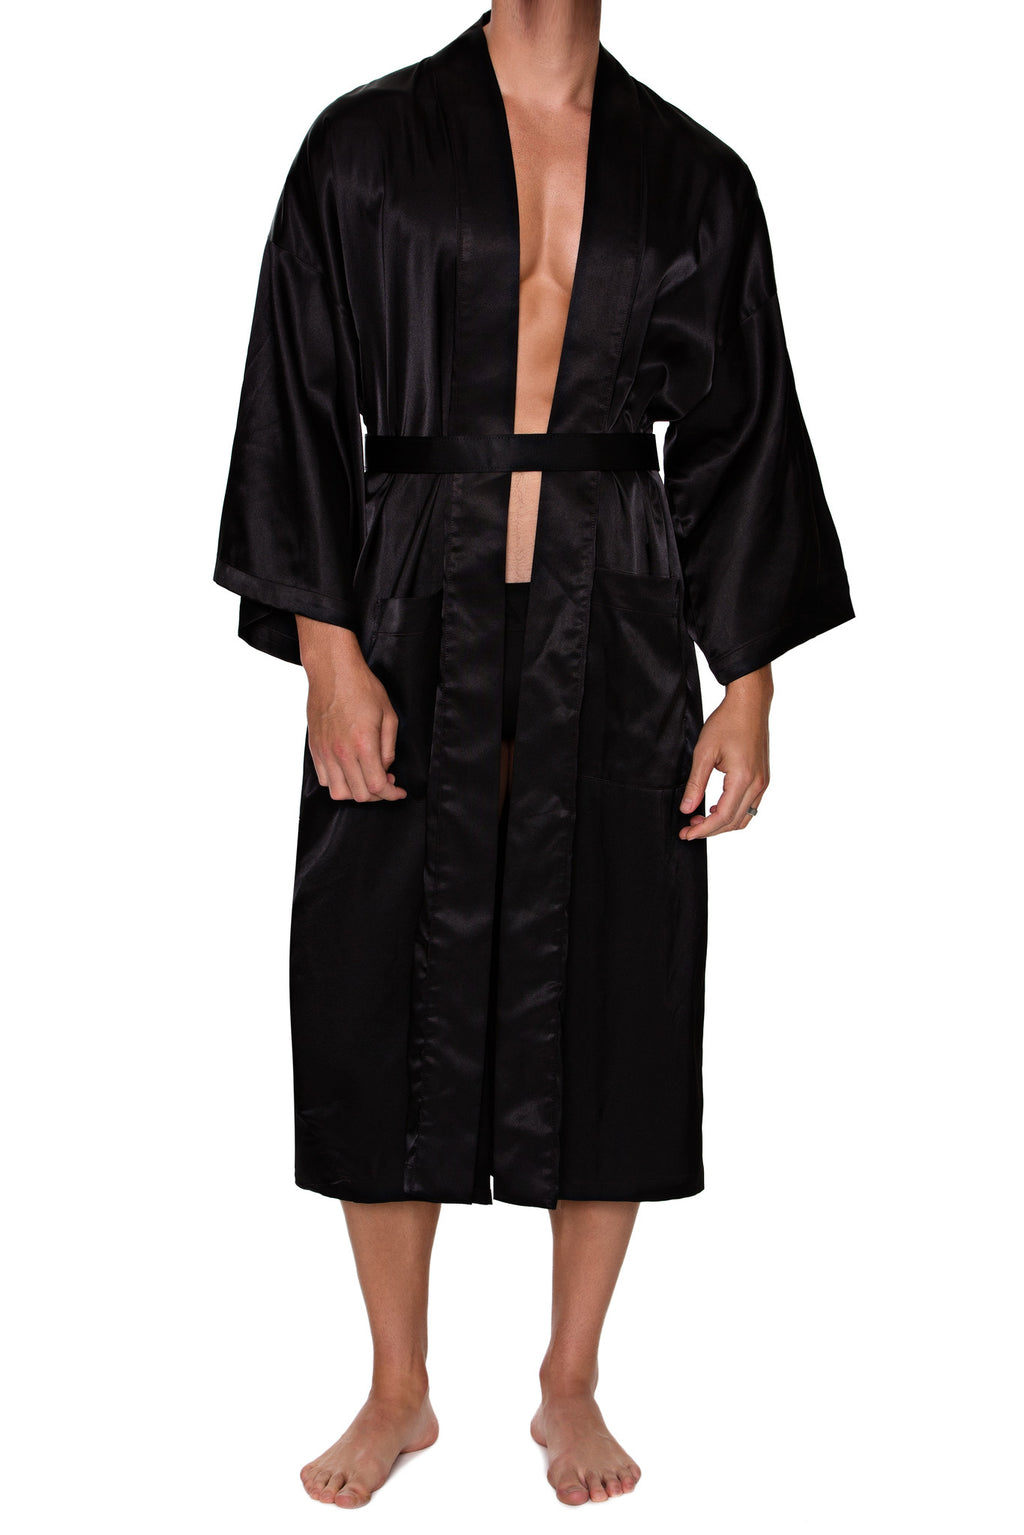 FULL LENGTH ROBE in SATIN - MENAGERIE Intimates MENS Lingerie